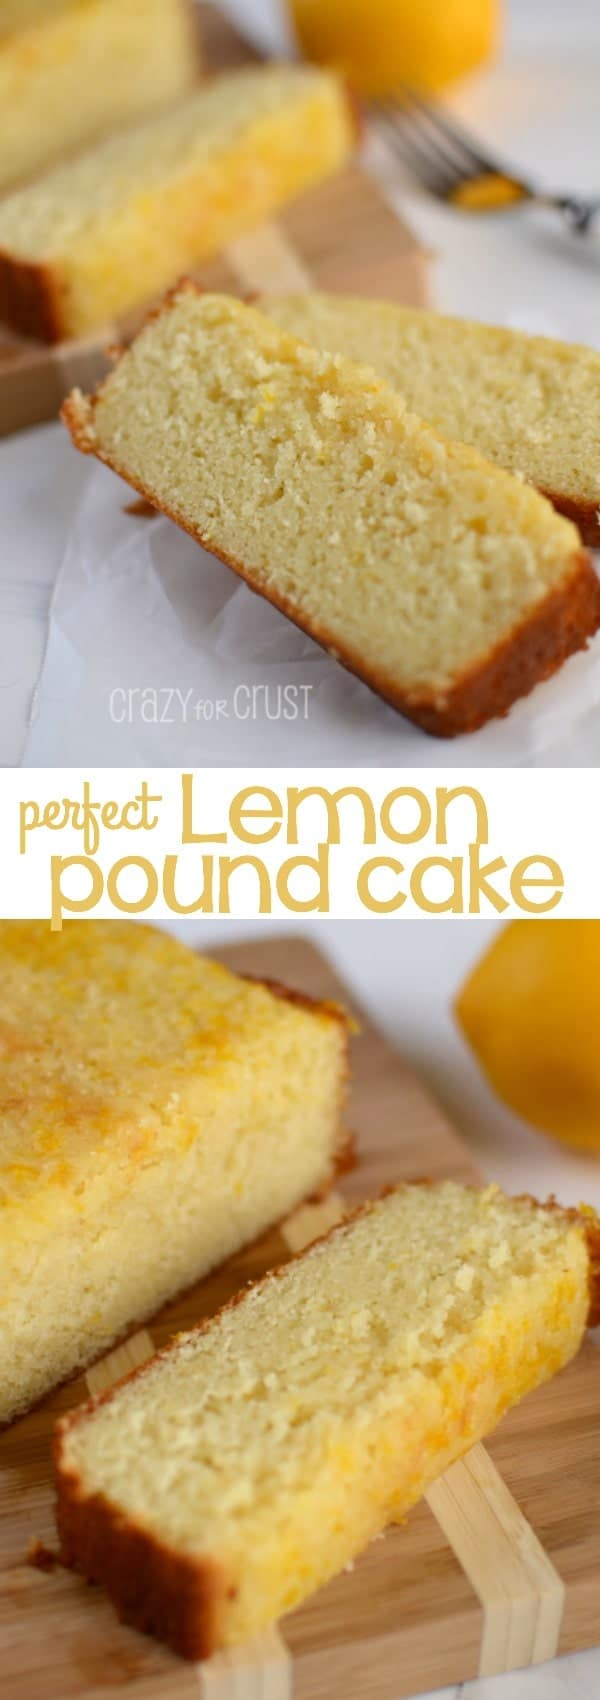 The perfect Lemon Pound Cake with triple lemon flavor